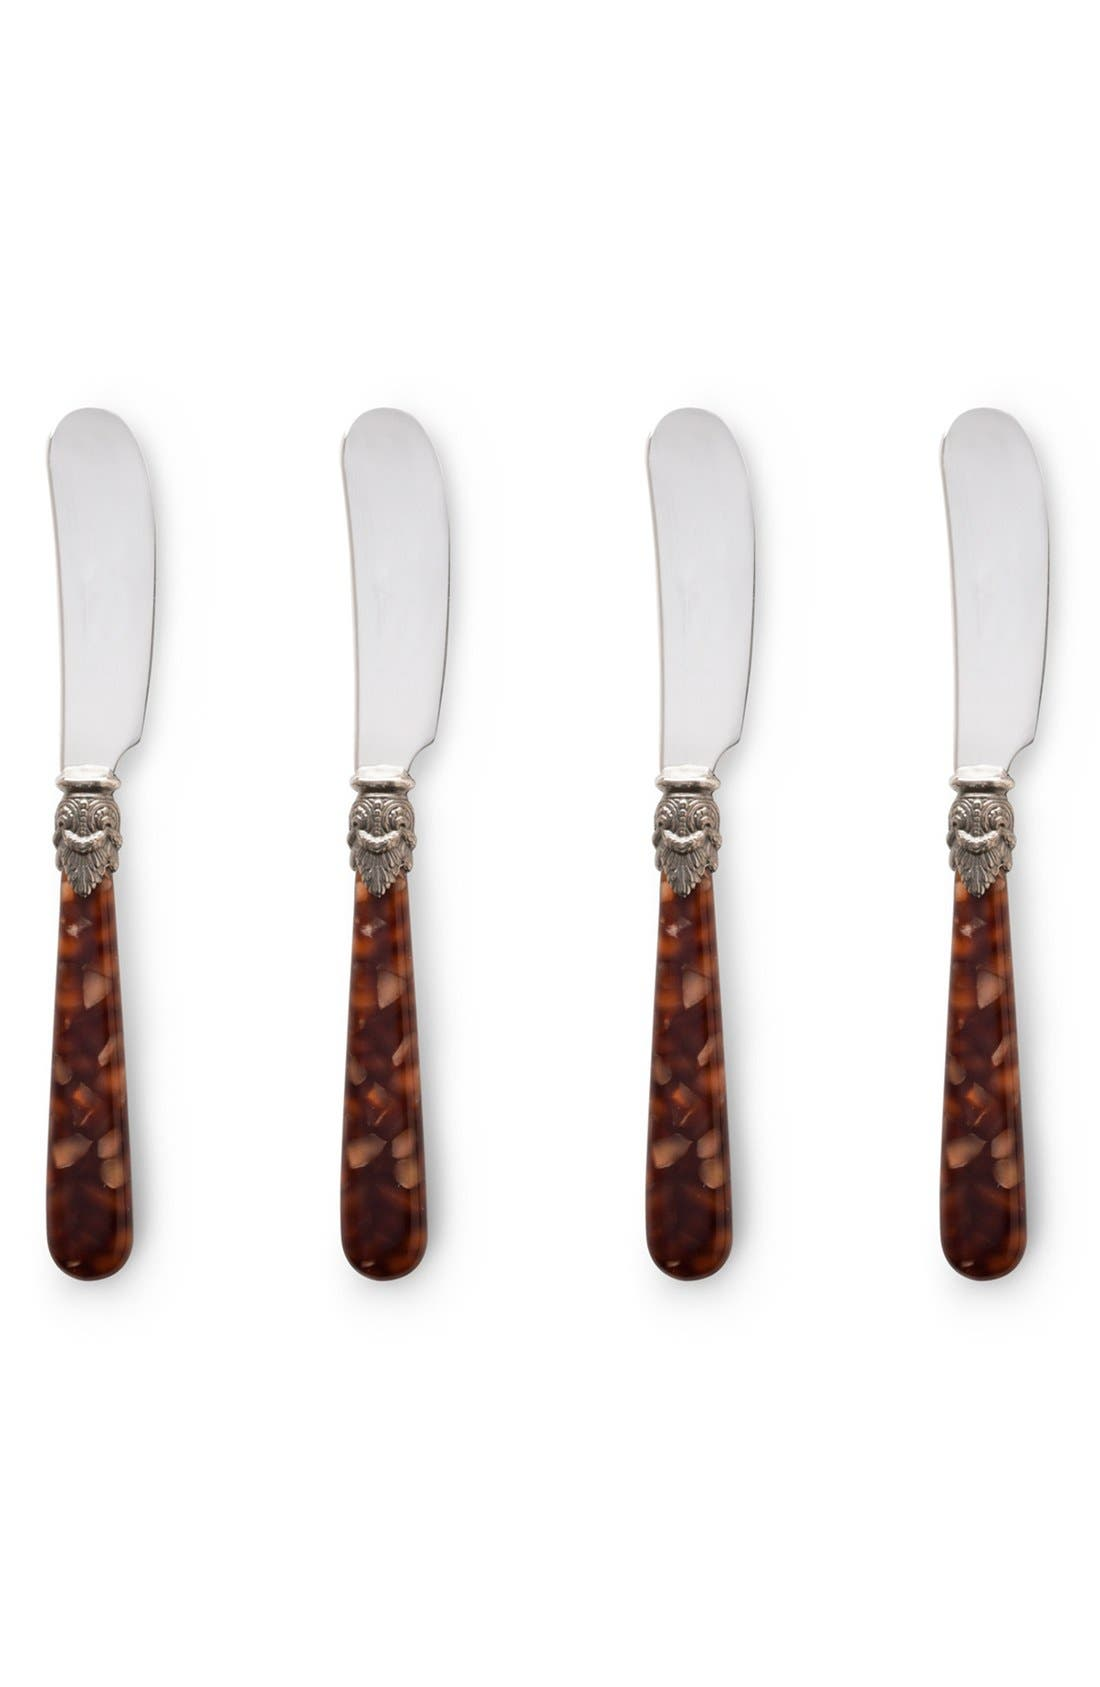 Rosanna 'Napoleon' Pate Knives (Set of 4)